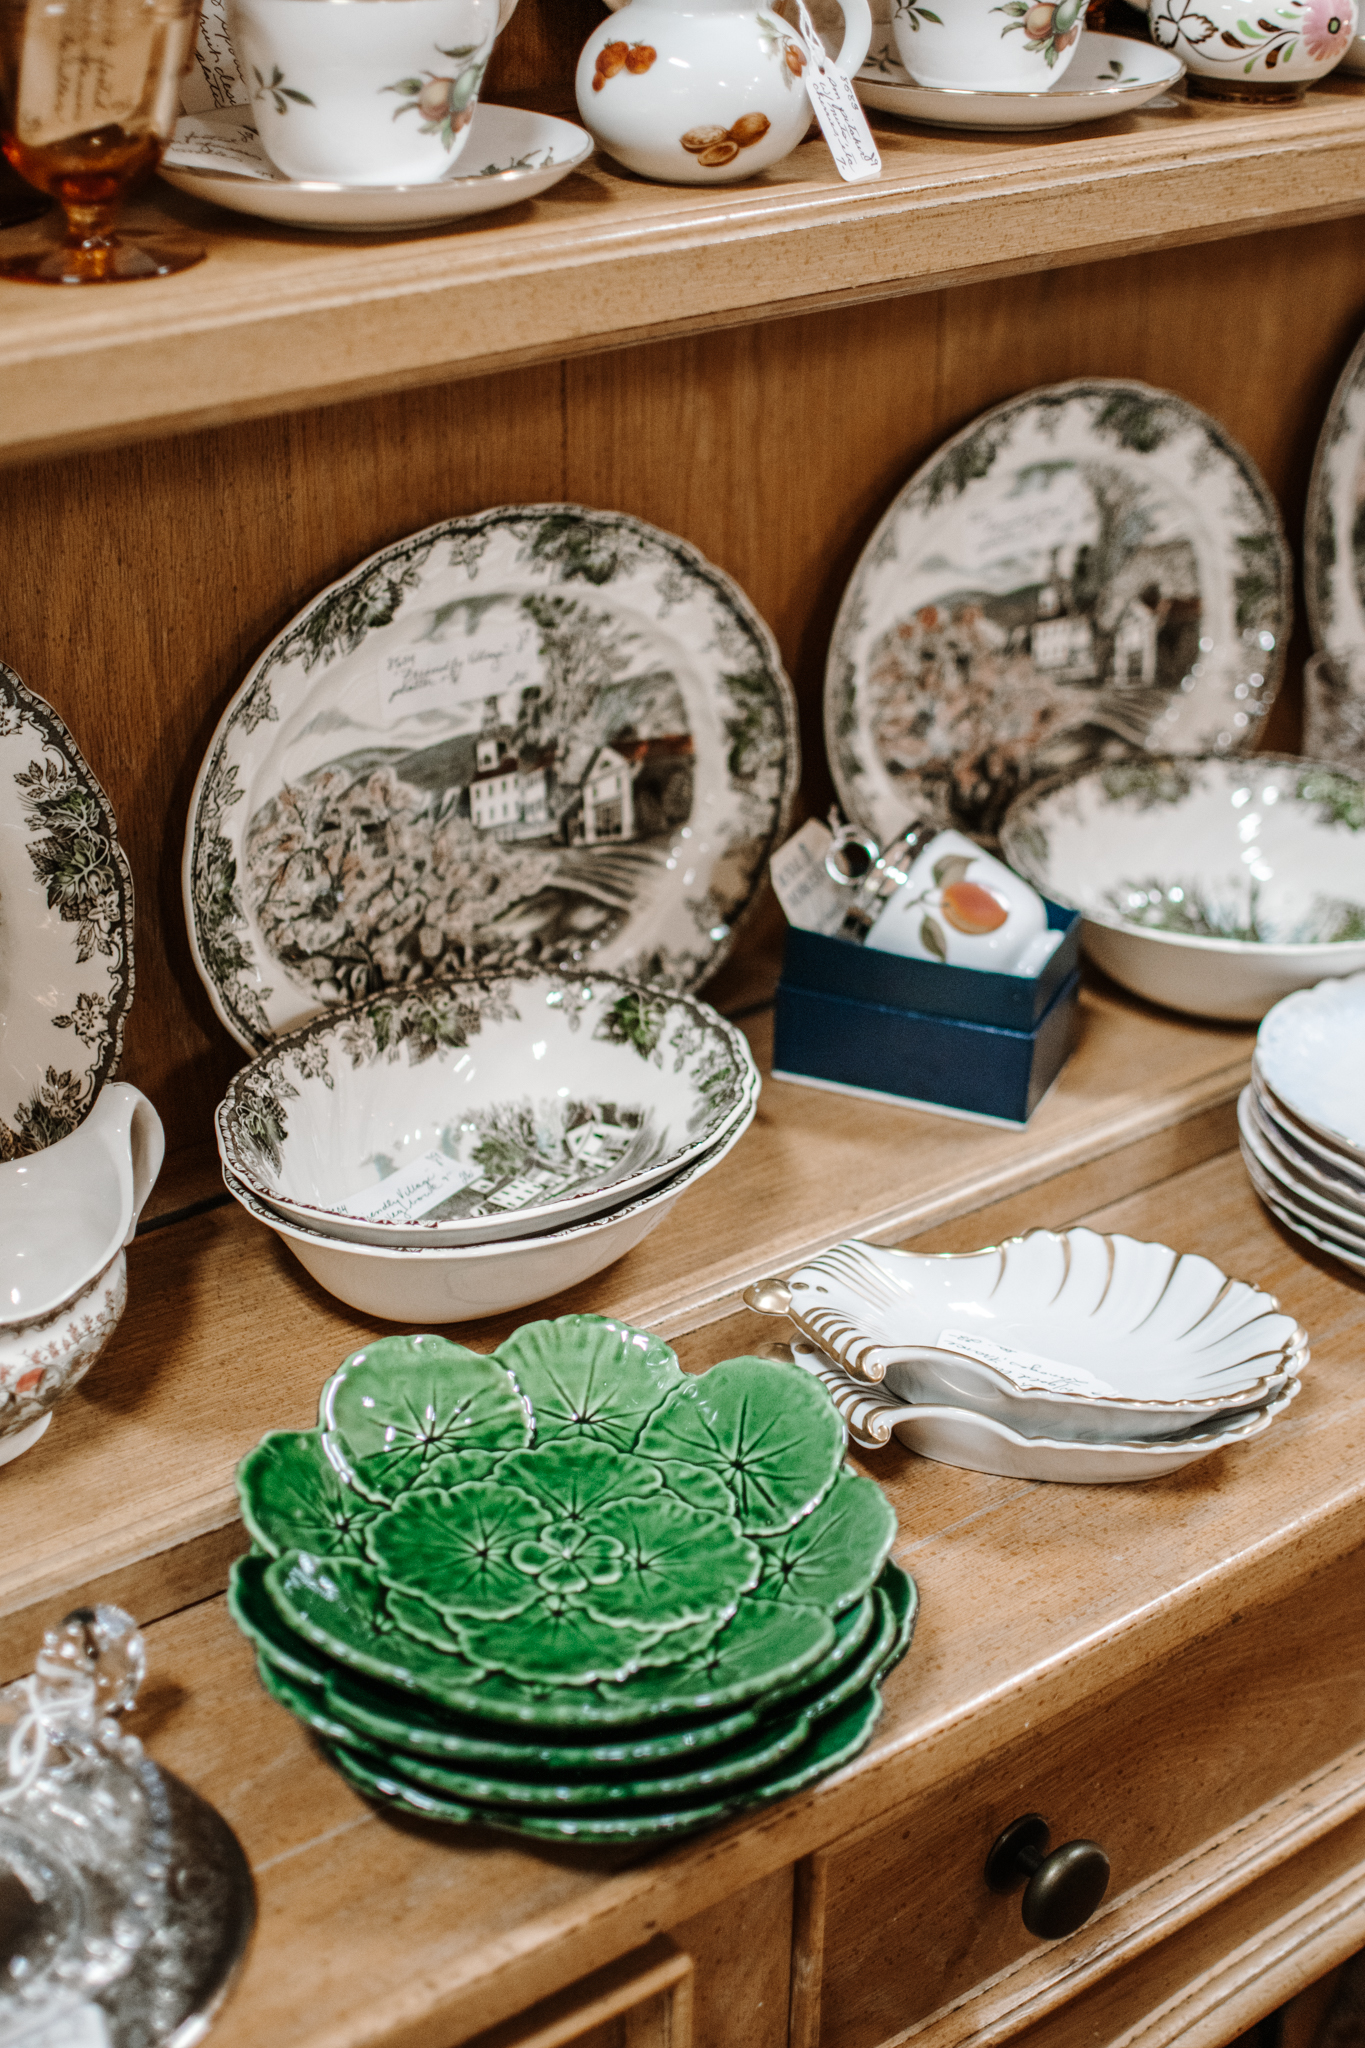 antiquing in frederick maryland - frederick maryland antiques - emporium antiques frederick